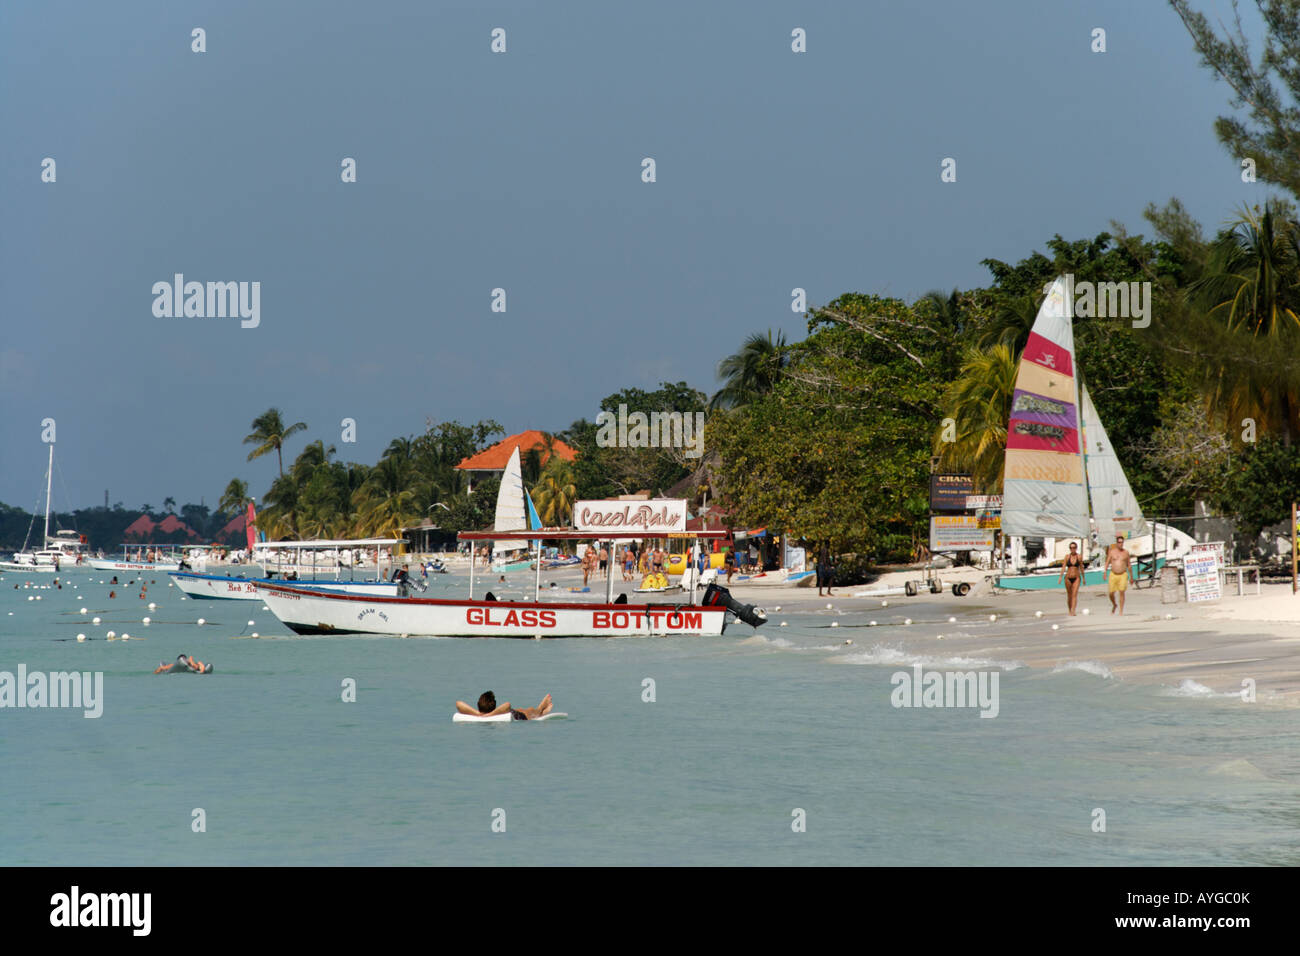 Jamaica Negril beach glass bottom boat - Stock Image